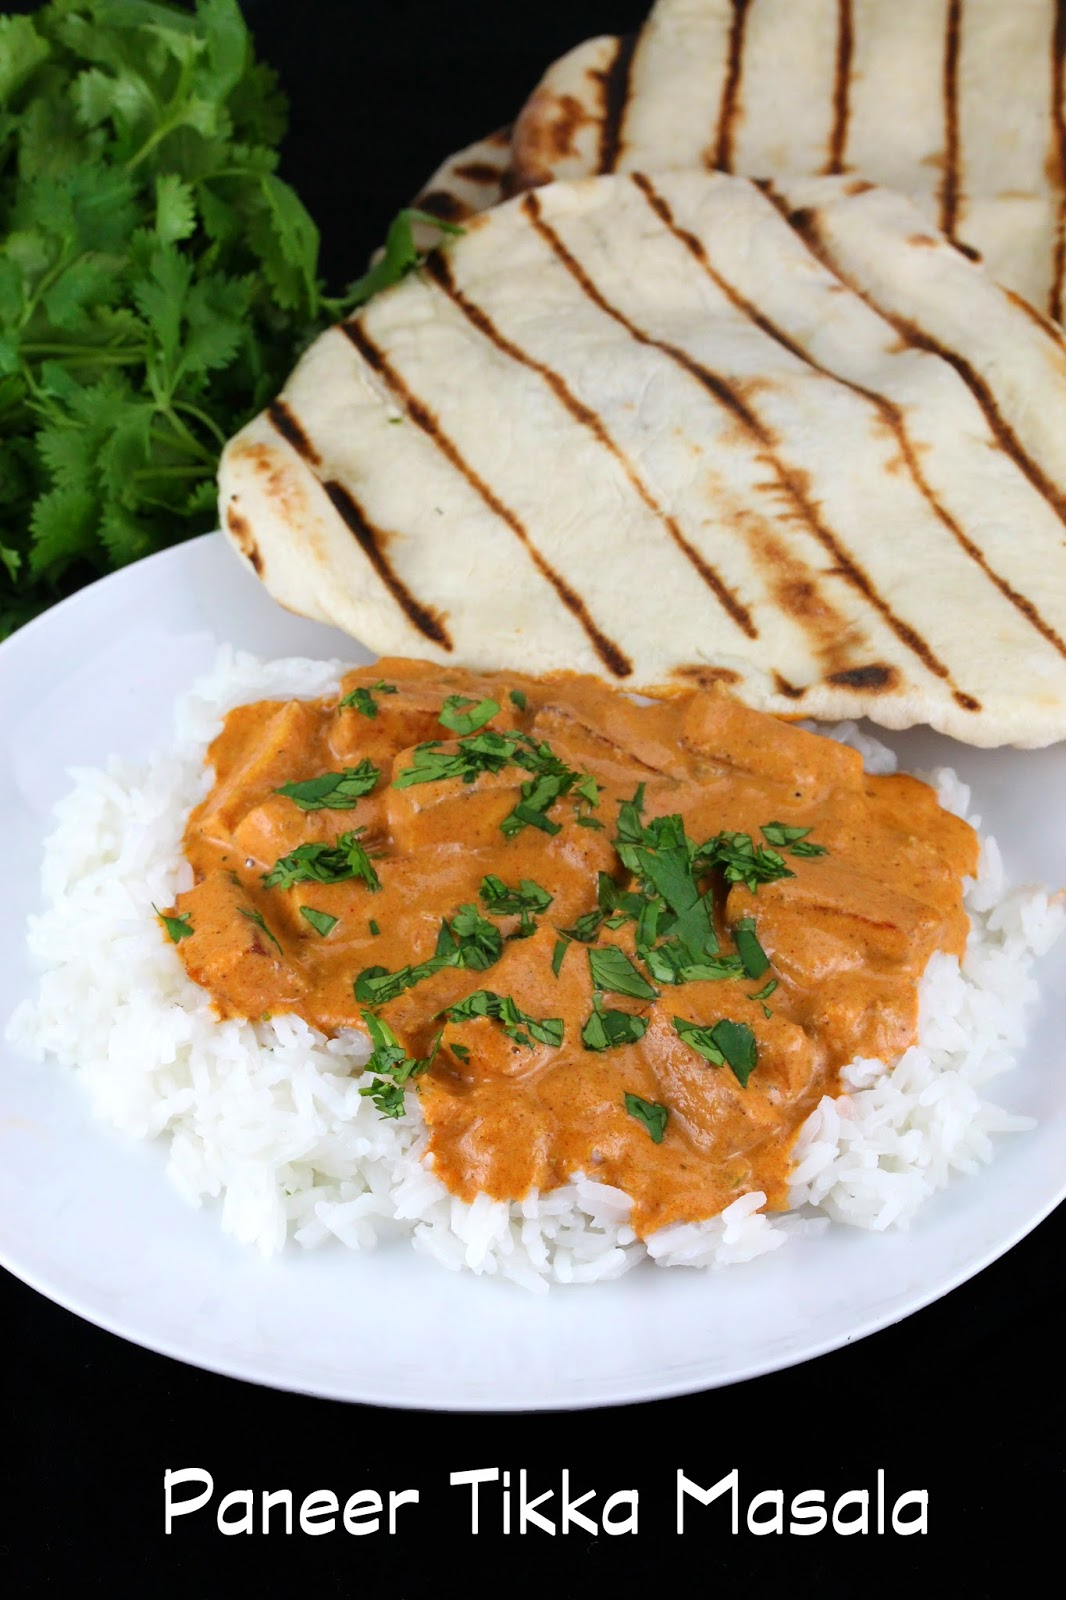 The Stay At Home Chef: Paneer Tikka Masala